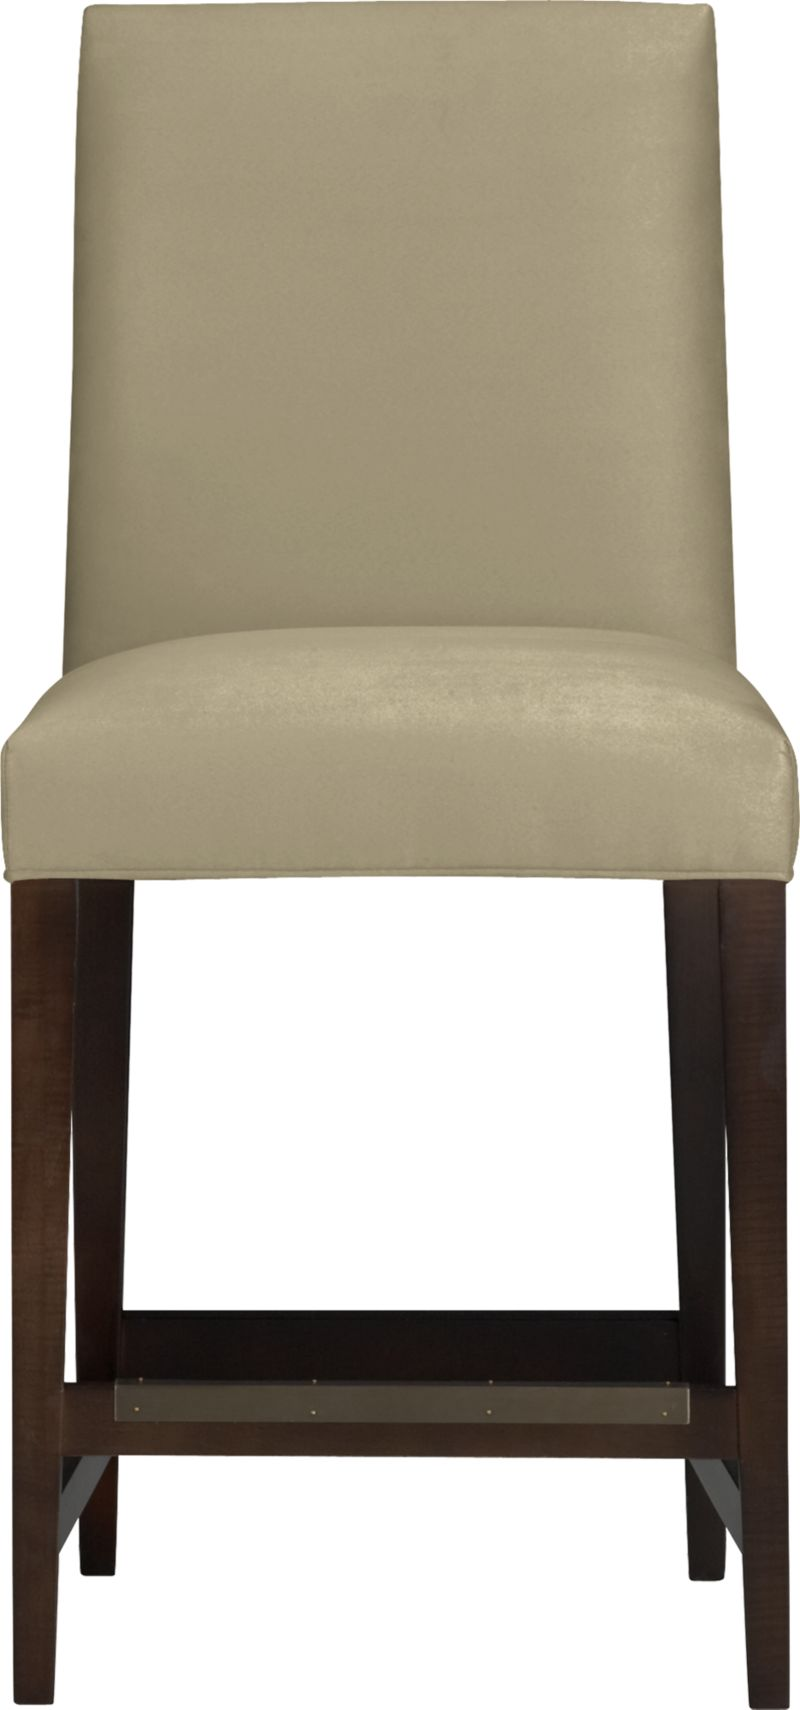 "Our Miles barstool is a fresh new classic with polished proportions and casual formality. Padded seat and gently curved back are upholstered in an easy-care textural poly blend in neutral sand. Slim hickory-colored hardwood legs taper gracefully to the floor.<br /><br />After you place your order, we will send a fabric swatch via next day air for your final approval. We will contact you to verify both your receipt and approval of the fabric swatch before finalizing your order.<br /><br /><NEWTAG/><ul><li>Eco-friendly construction</li><li>Certified sustainable solid engineered hardwood frame</li><li>Soy- or plant-based polyfiber cushions</li><li>Solid maple legs with a hickory finish</li><li>Poly-cotton blend fabric</li><li>24""H seat sized for counters</li><li>Made in North Carolina, USA of domestic and imported materials</li></ul>"